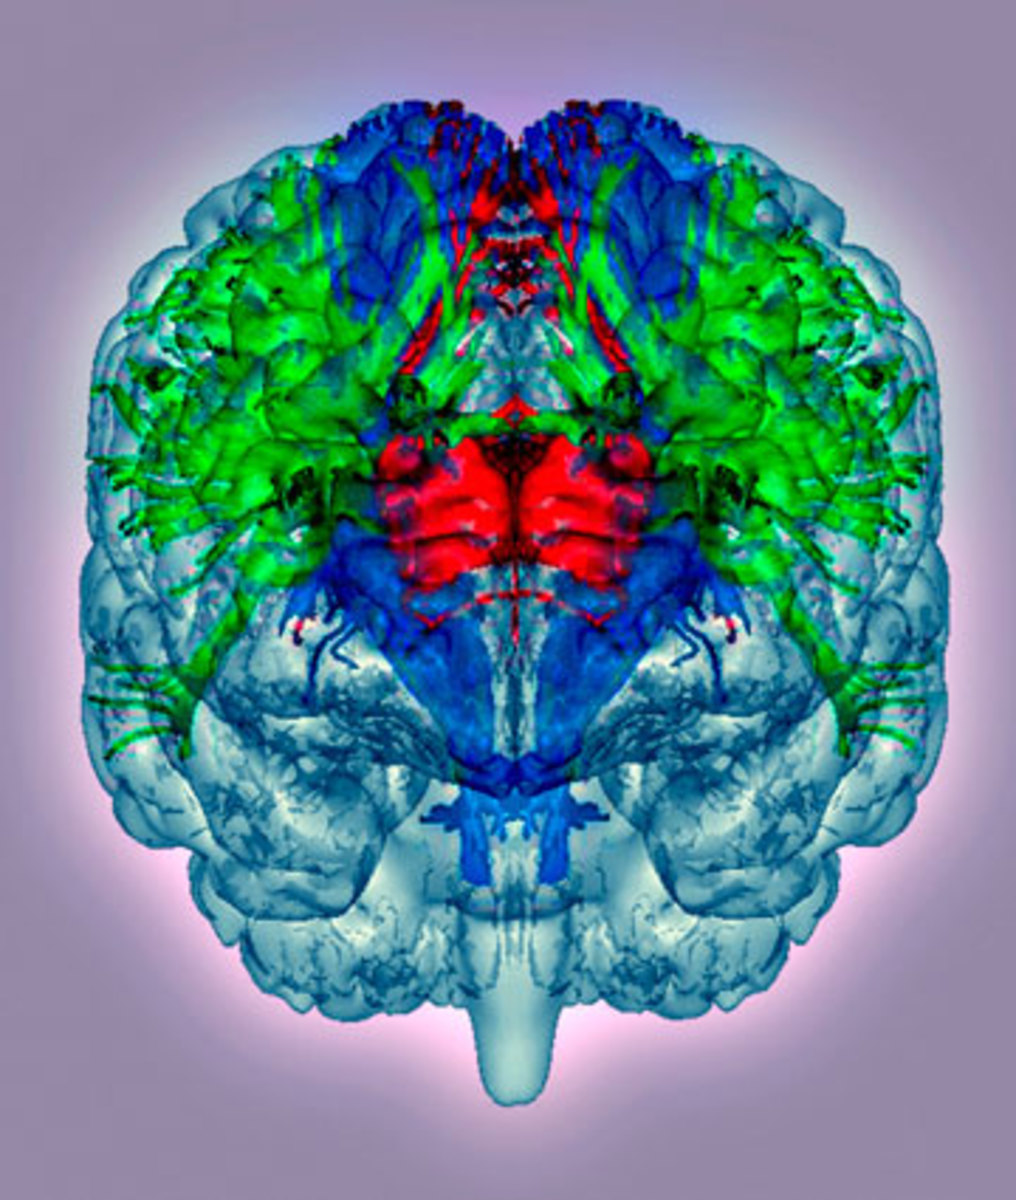 Diffusion tensor imaging could reveal in real time what is happening inside the brain—much more effectively than MRIs and CT scans do now. (Getty Images/Science Photo Library RM)